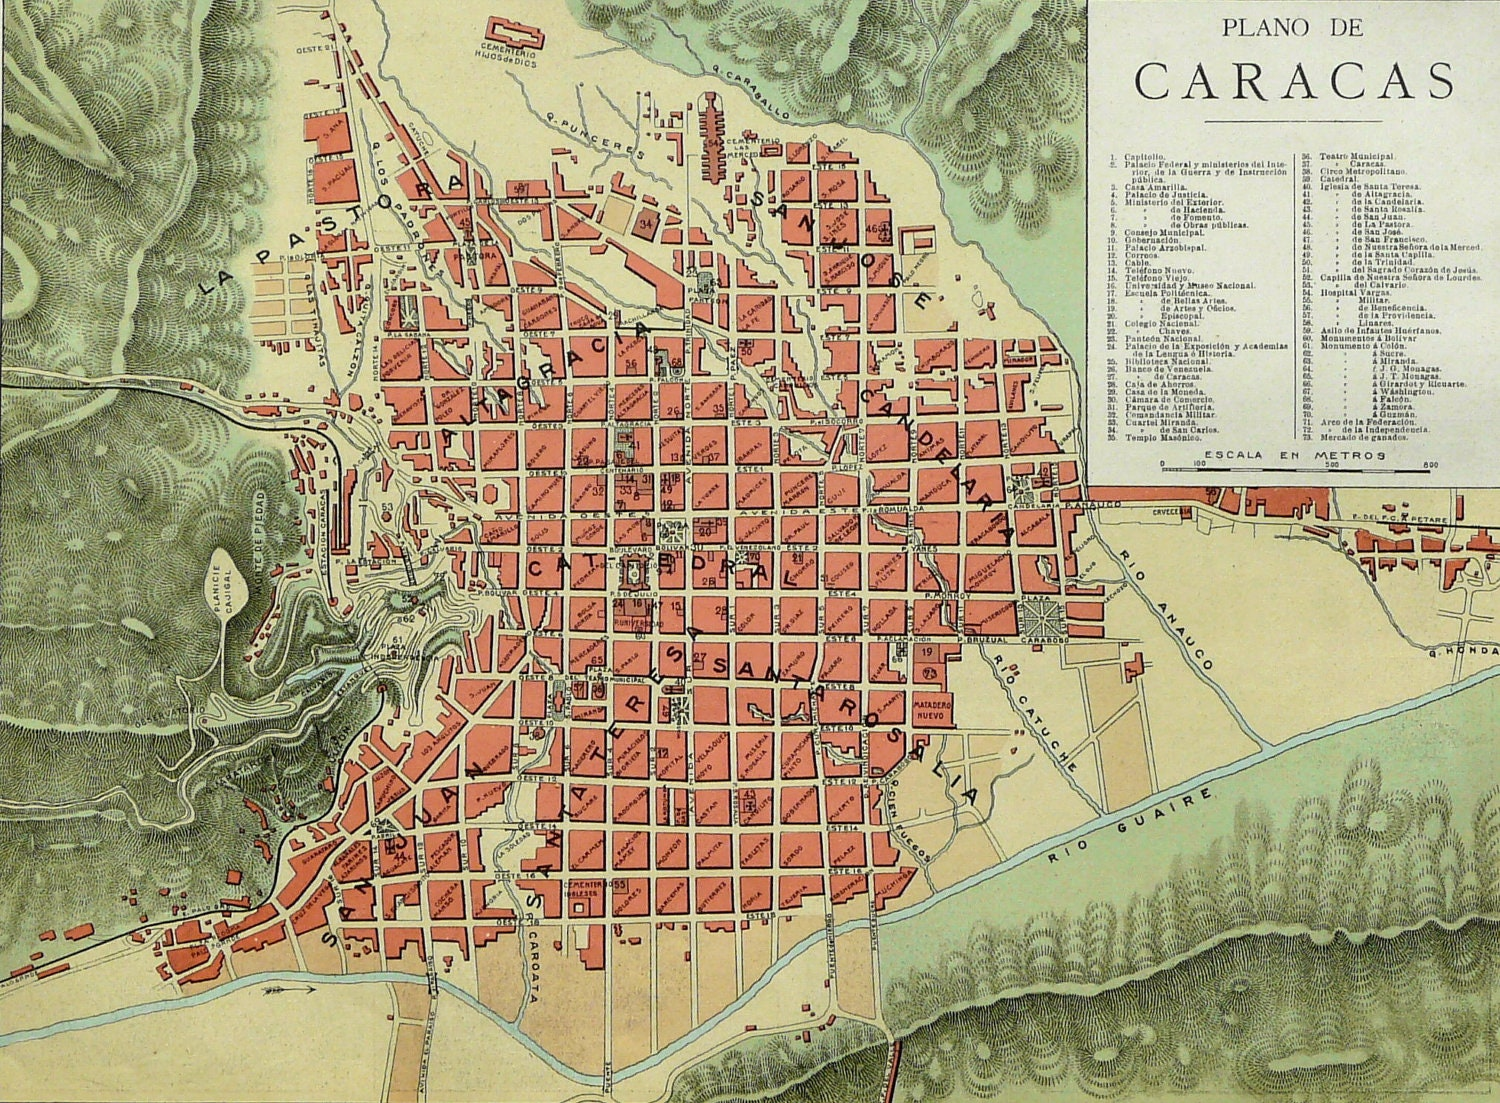 1900 Antique rare city map of CARACAS by AntiquePrintsOnly on Etsy